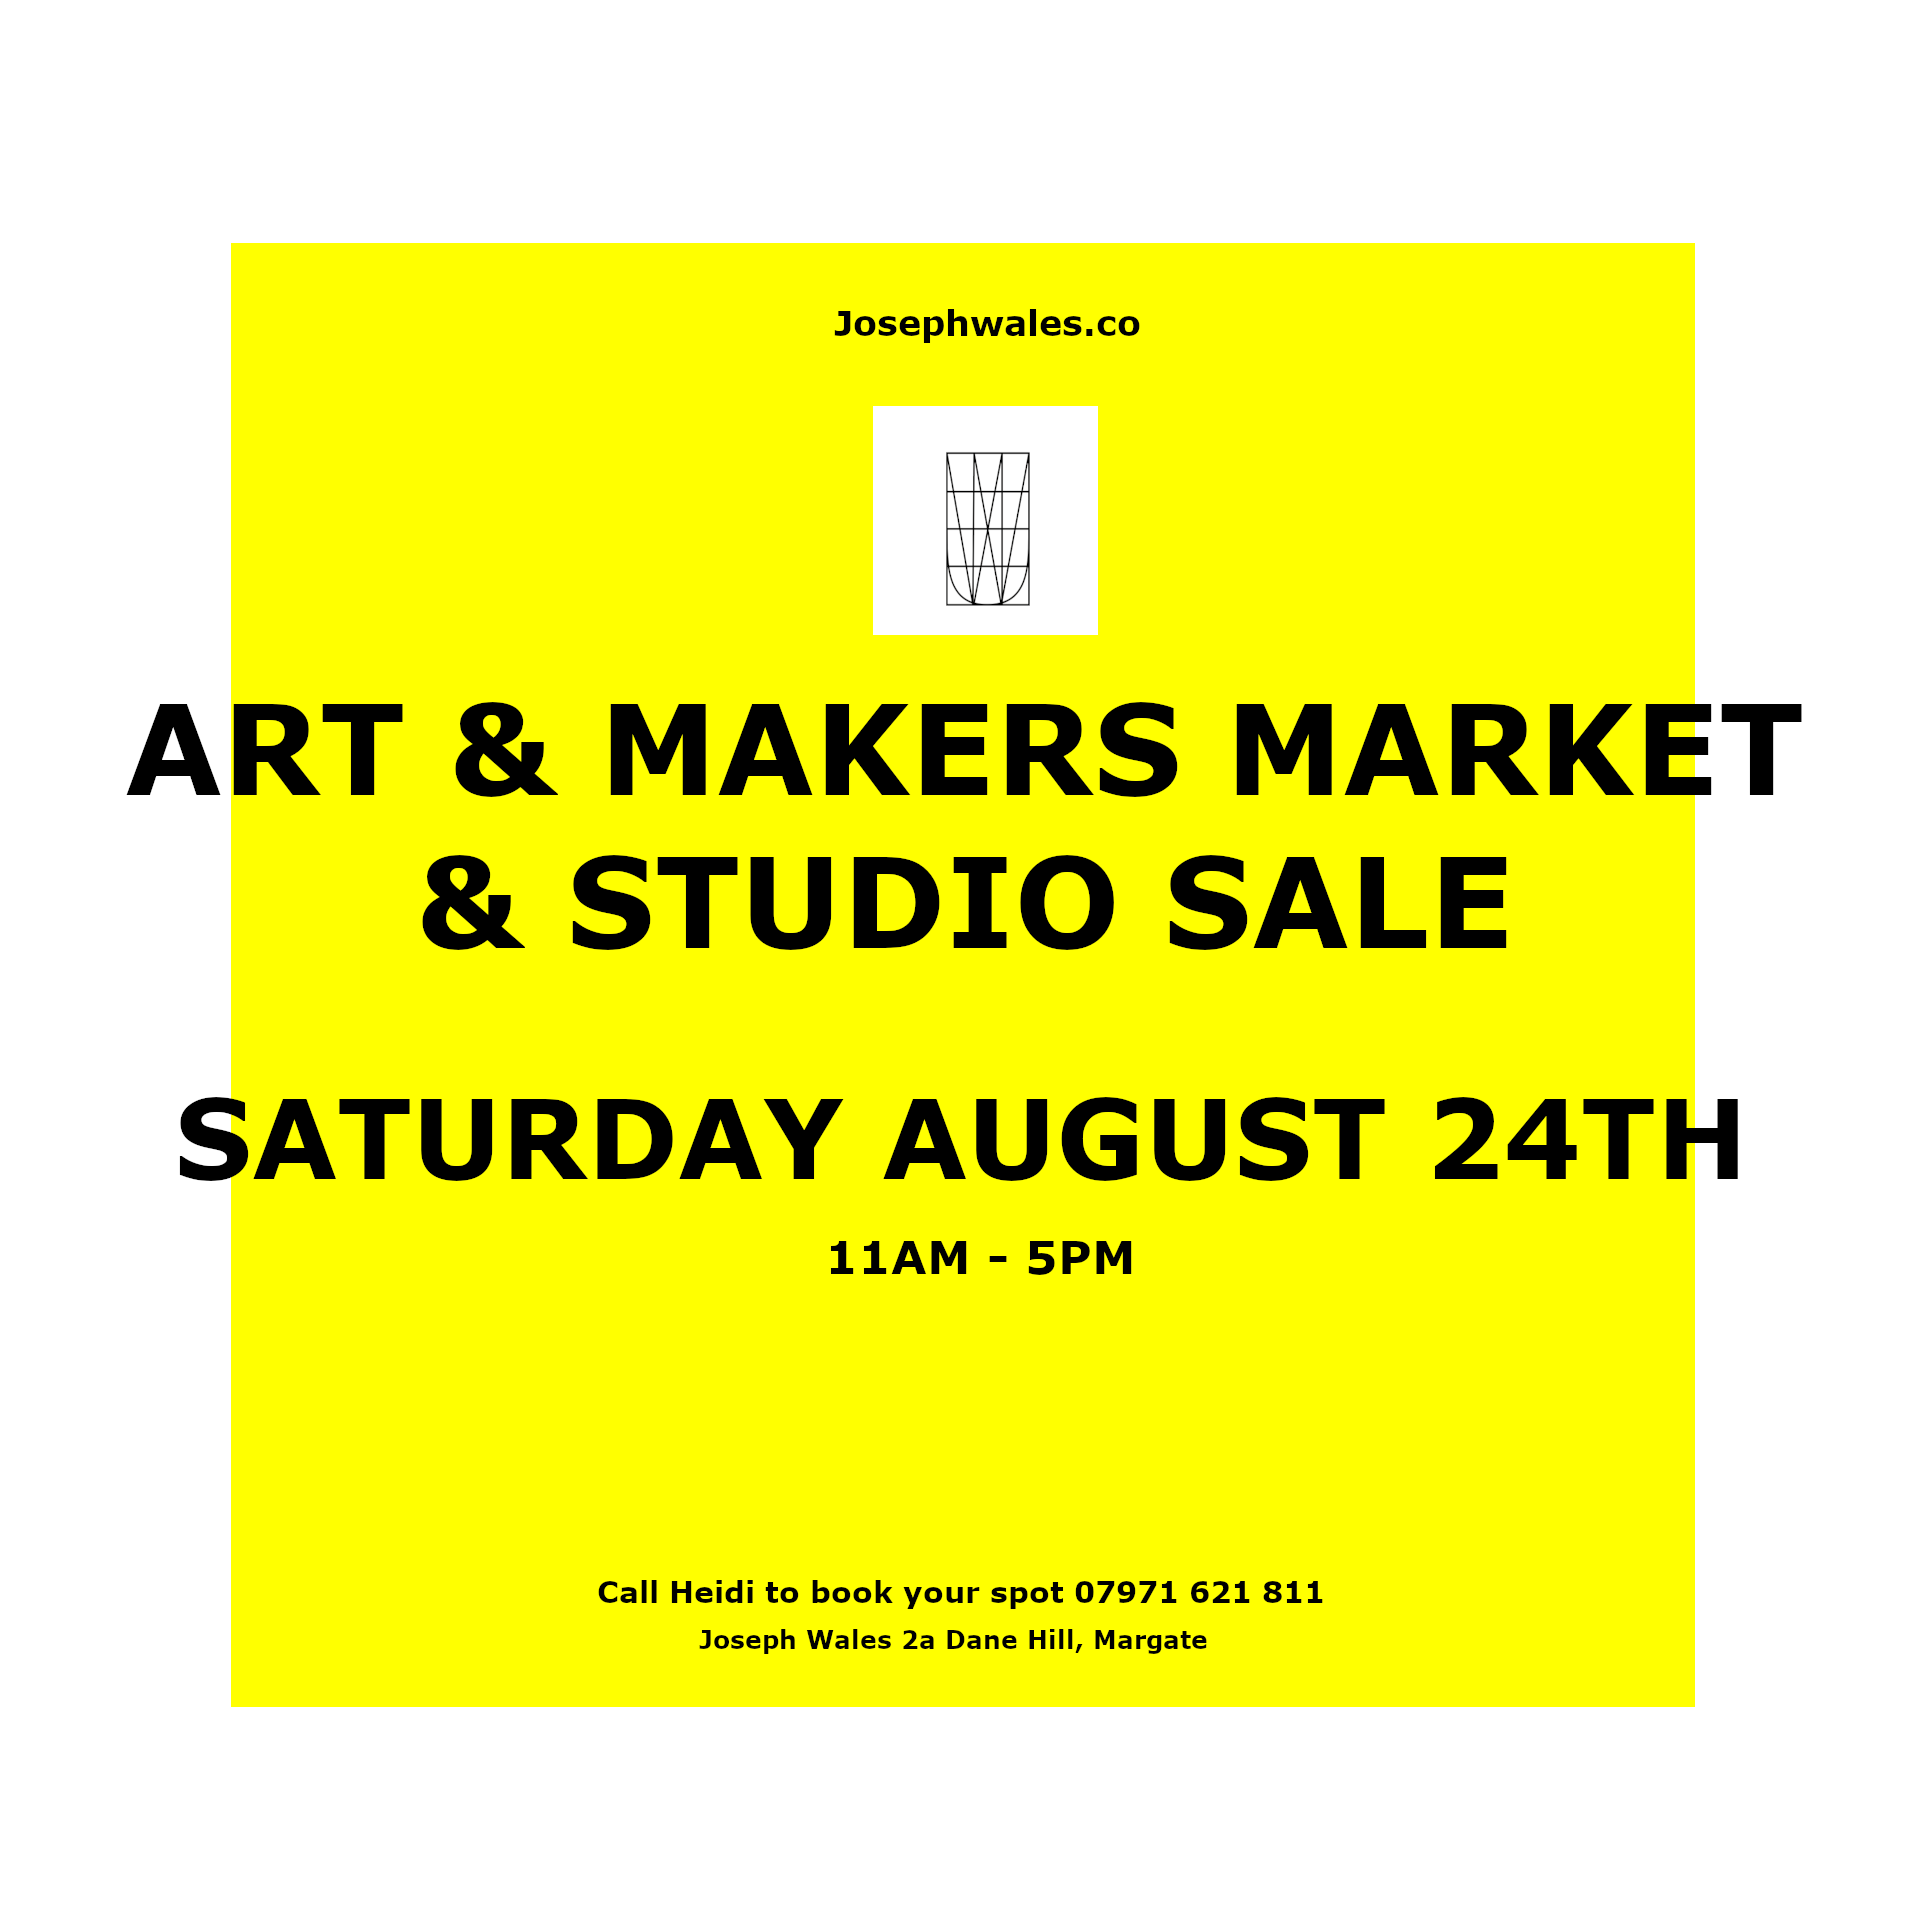 Art and Makers Market And Studio Sale - Bookings now being taken for our next fantastic Art & Makers Market. If you paint things, make things, draw things, sew things, print things, collage things, design things, photograph things, write things, then this is the place to show those things to the world! The world wants to see them and buy them! Joseph Wales Studio holders will also have some of their fabulous creations for sale!To secure your £15 pitch, e-mail Heidi josephwalesstudios@gmail.com .